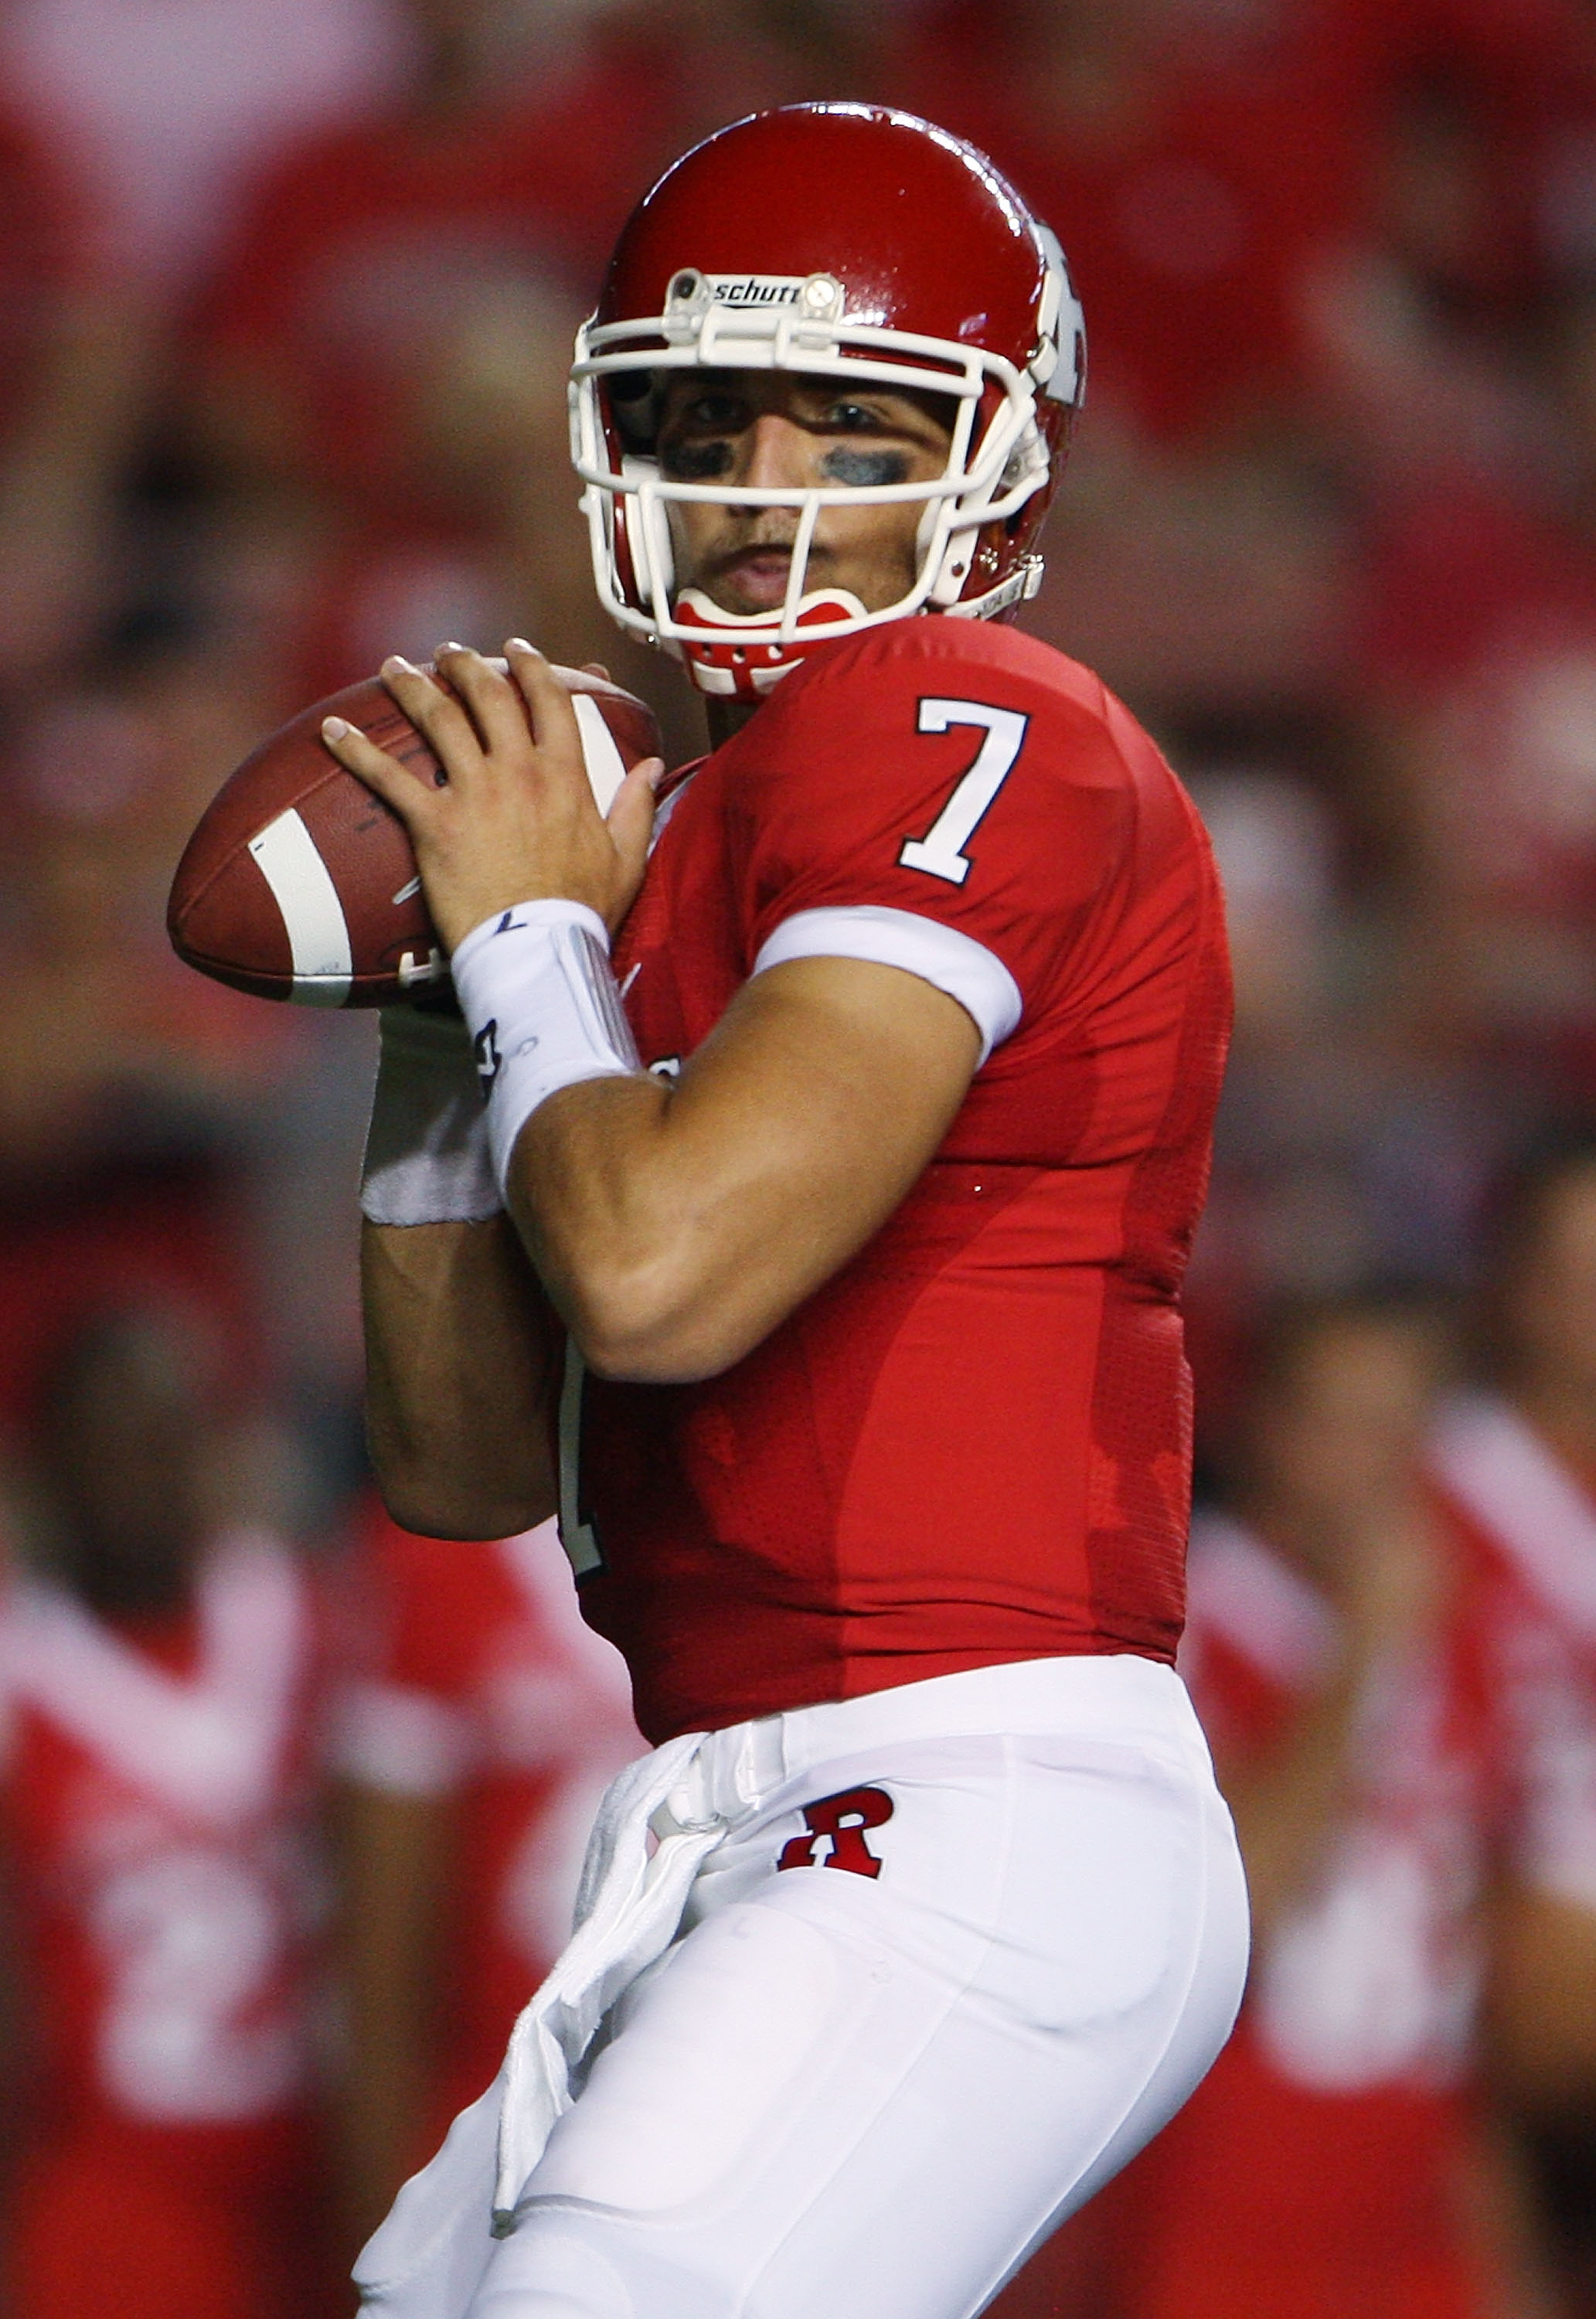 NEW BRUNSWICK, NJ - SEPTEMBER 02:  Tom Savage #7 of the Rutgers Scarlet Knights drops back with the ball against the Norfolk State Spartans at Rutgers Stadium on September 2, 2010 in New Brunswick, New Jersey.  The Scarlet Knights beat the Spartans 31 - 0